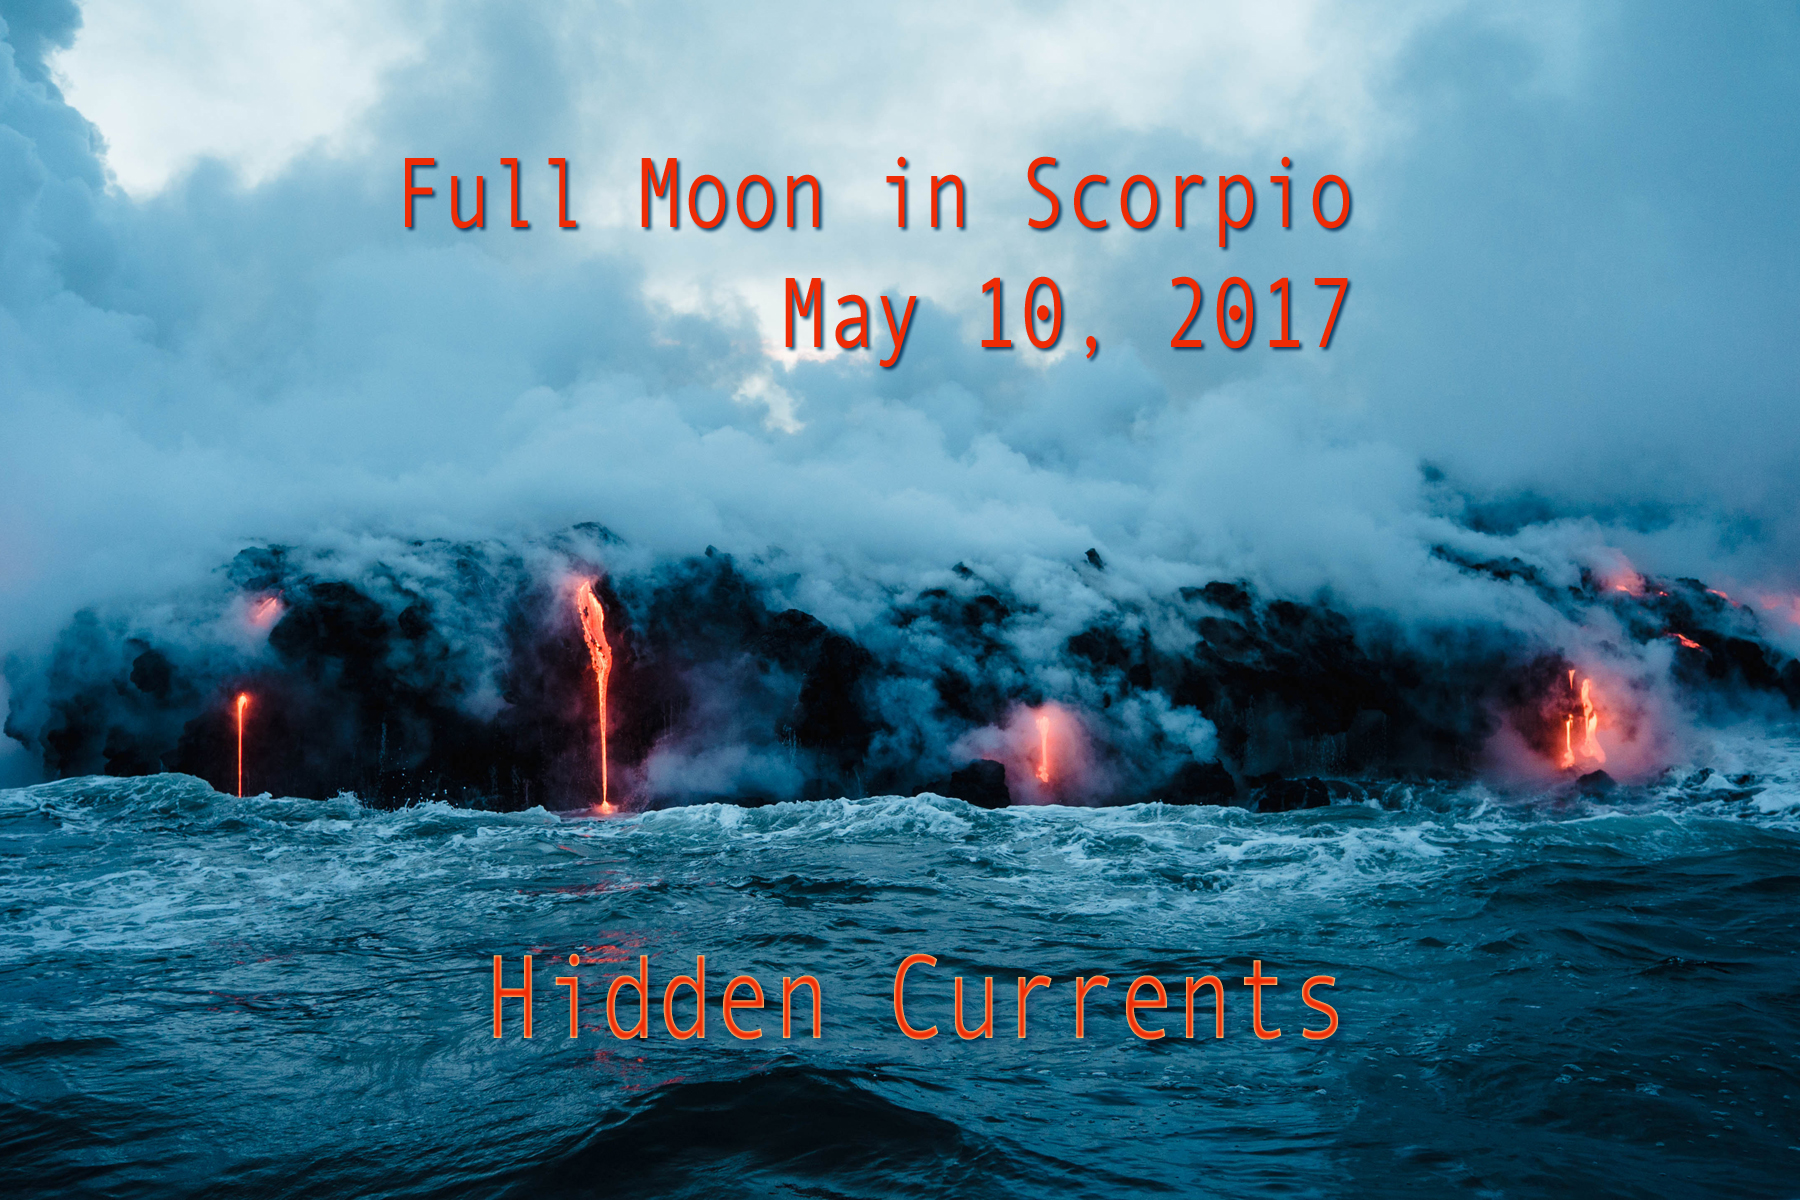 Full Moon in Scorpio: Hidden Currents